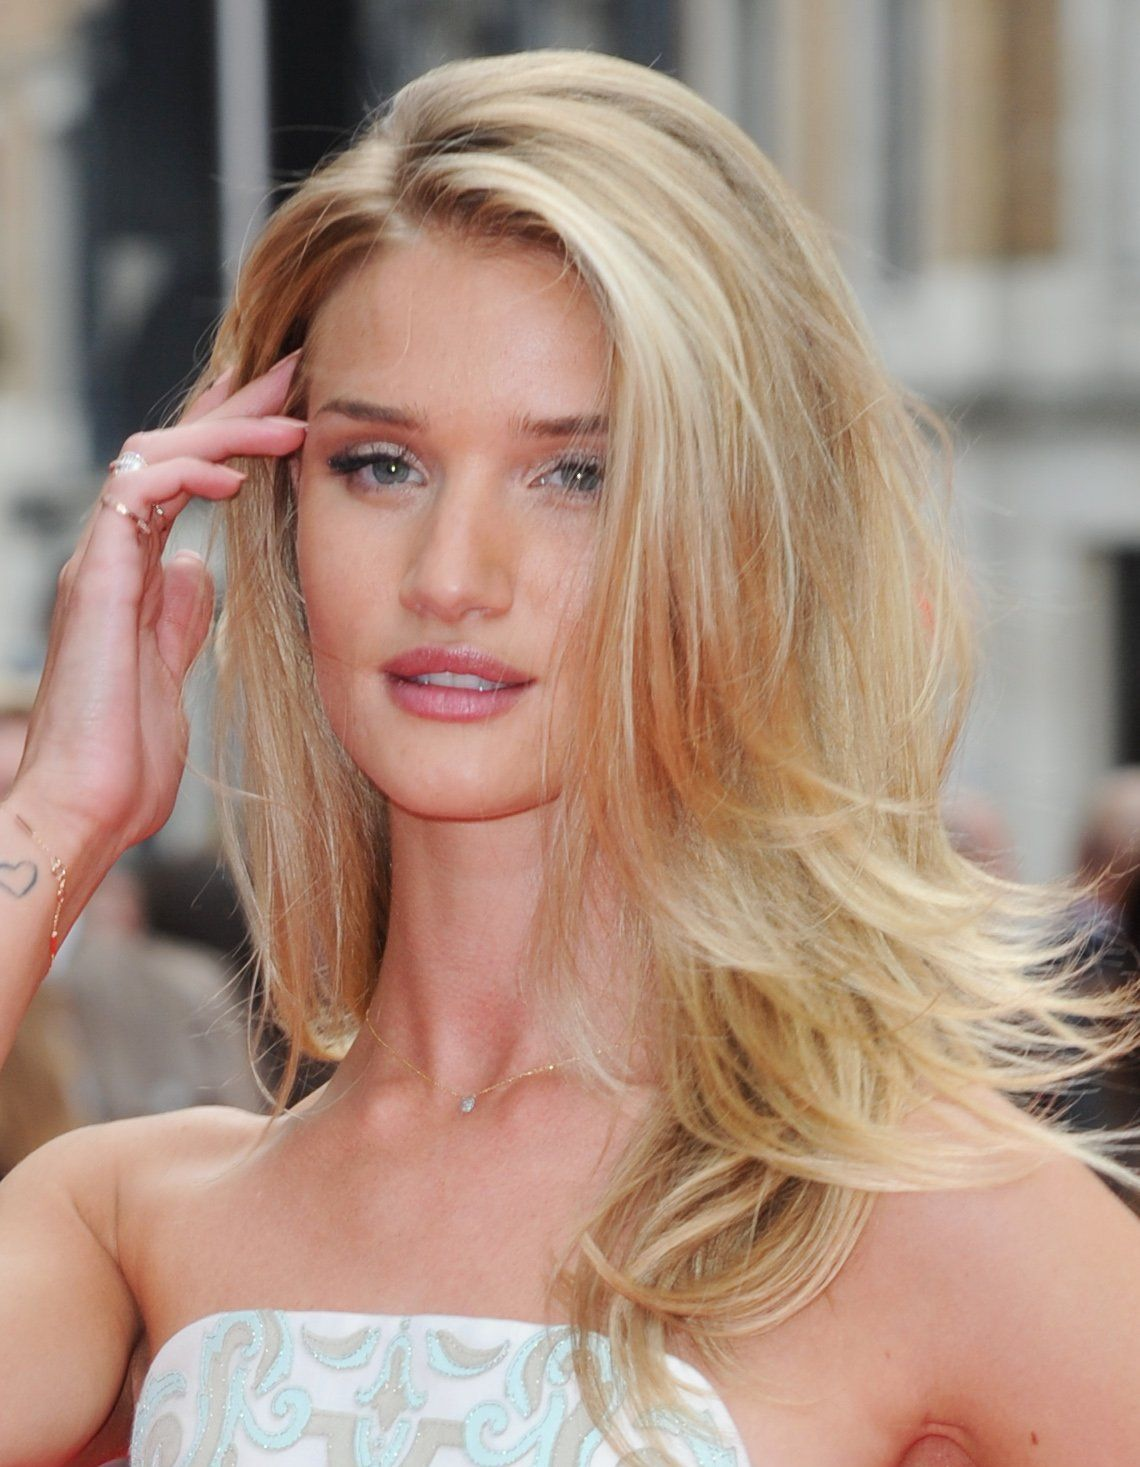 Hacked Rosie Huntington-Whiteley nudes (73 foto and video), Sexy, Leaked, Twitter, legs 2017